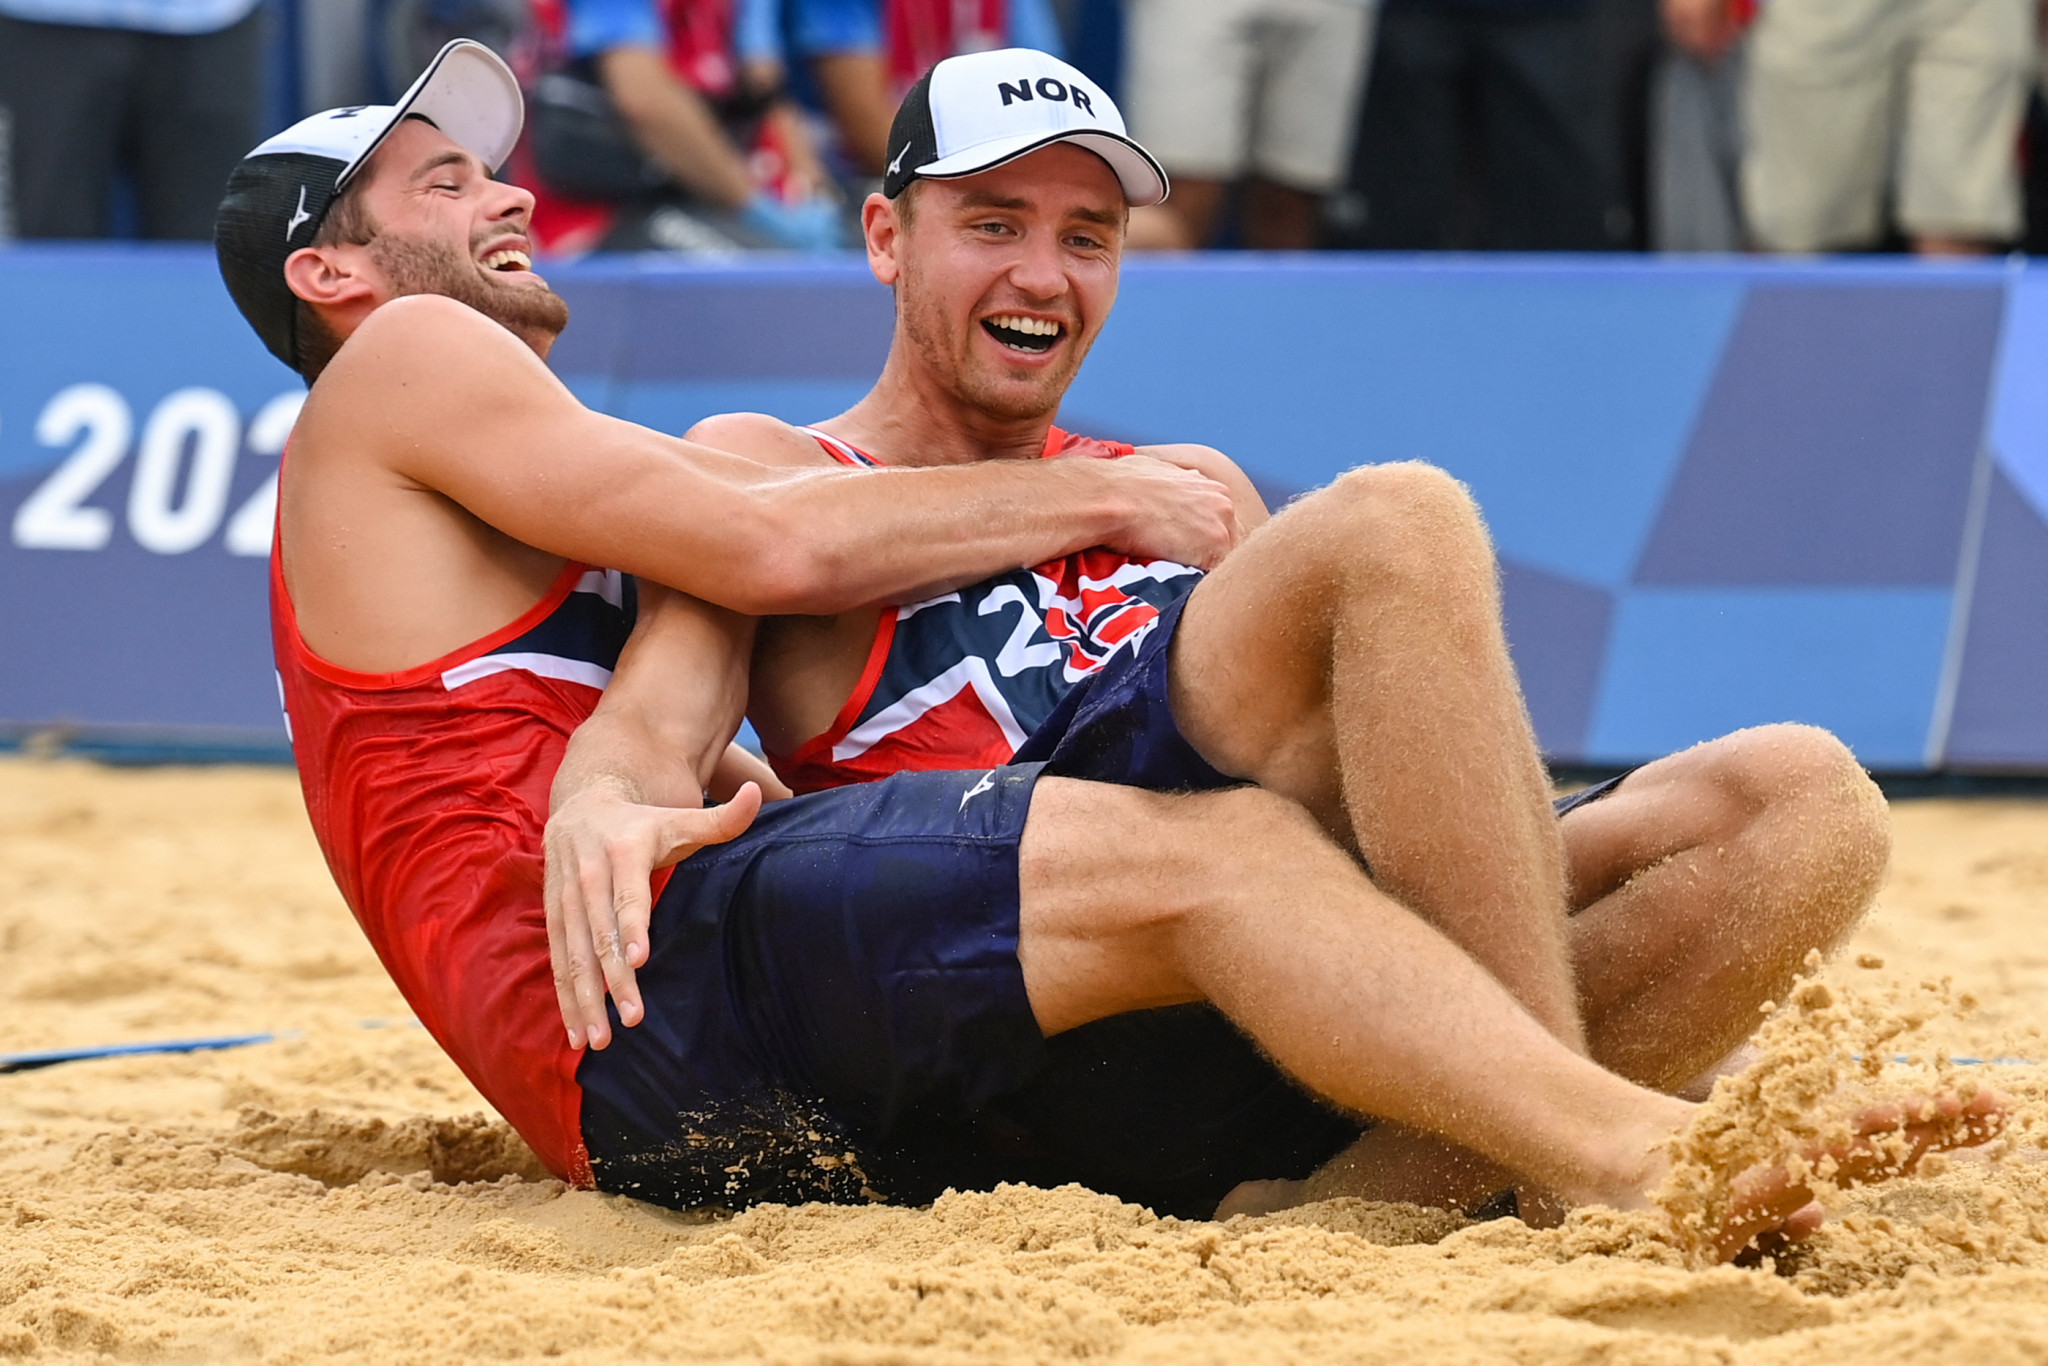 Mol and Sørum defeat ROC pair to win men's beach volleyball gold